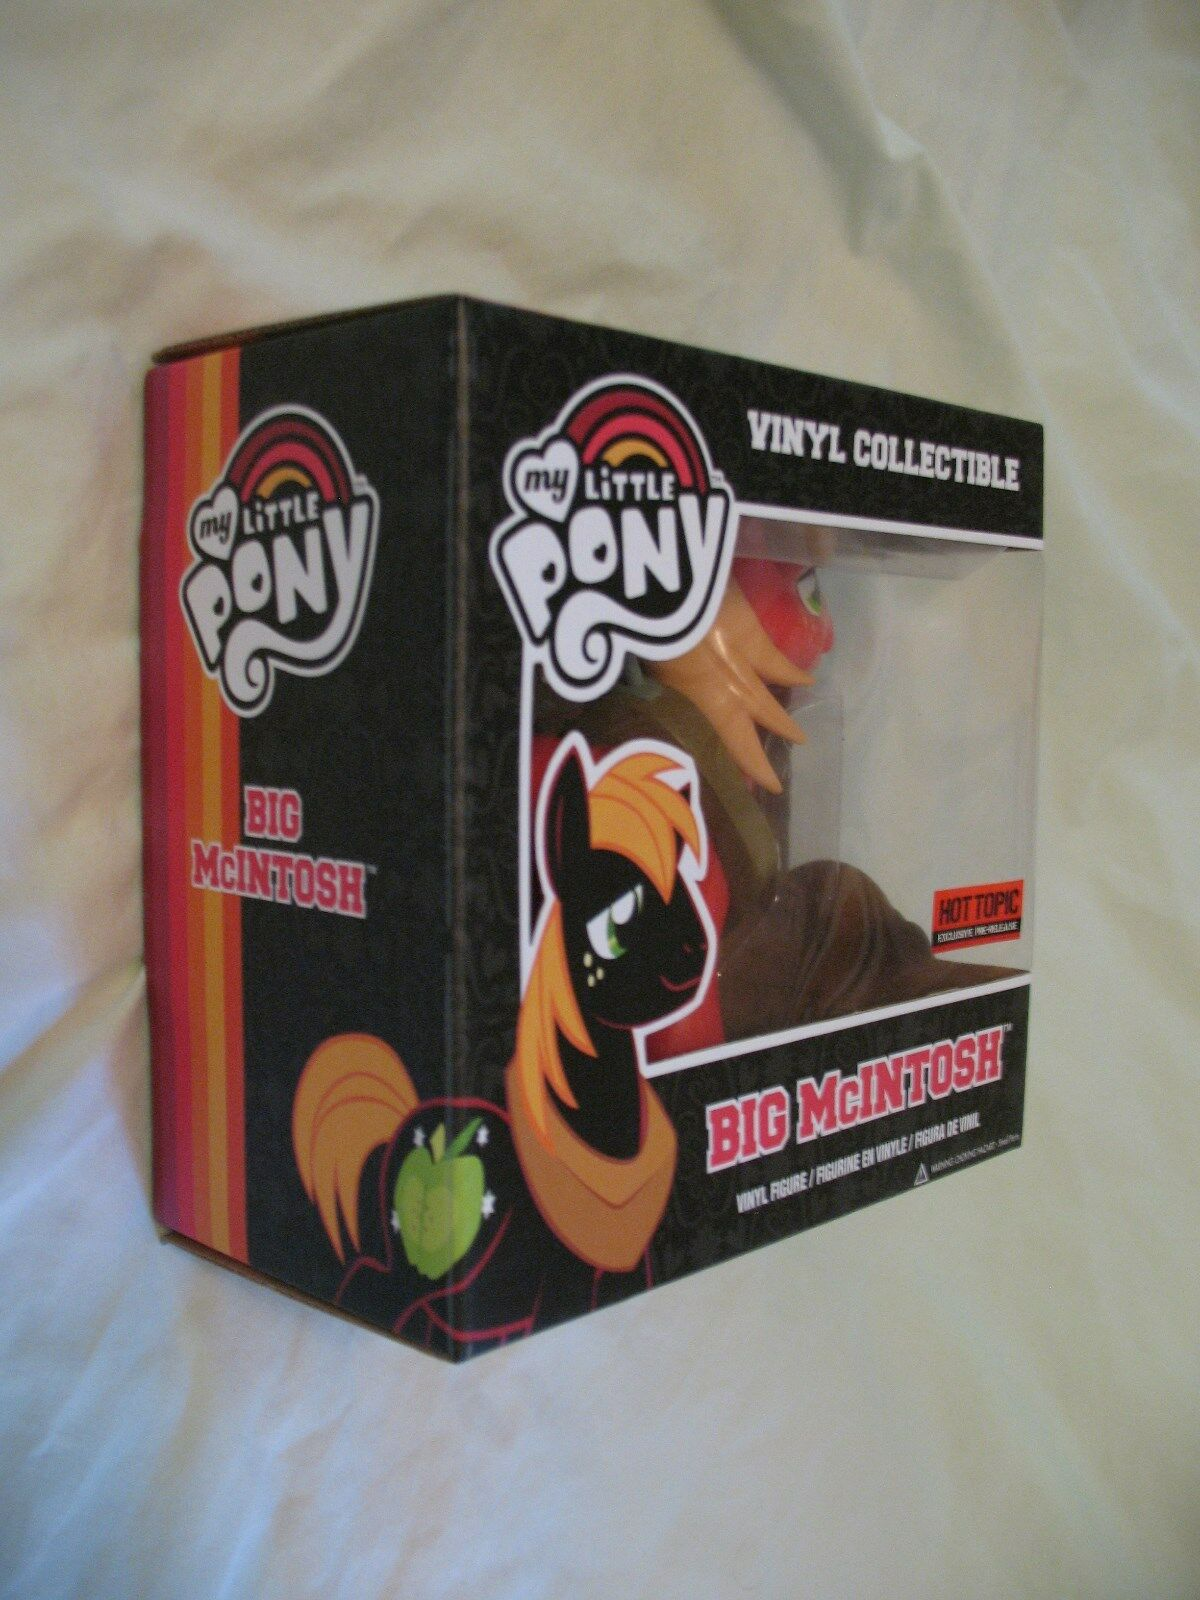 divertimentoKO My Little Pony FiM 'gree McIntosh' cifra - Limited Limited Limited Ed Release NIB 8235a5